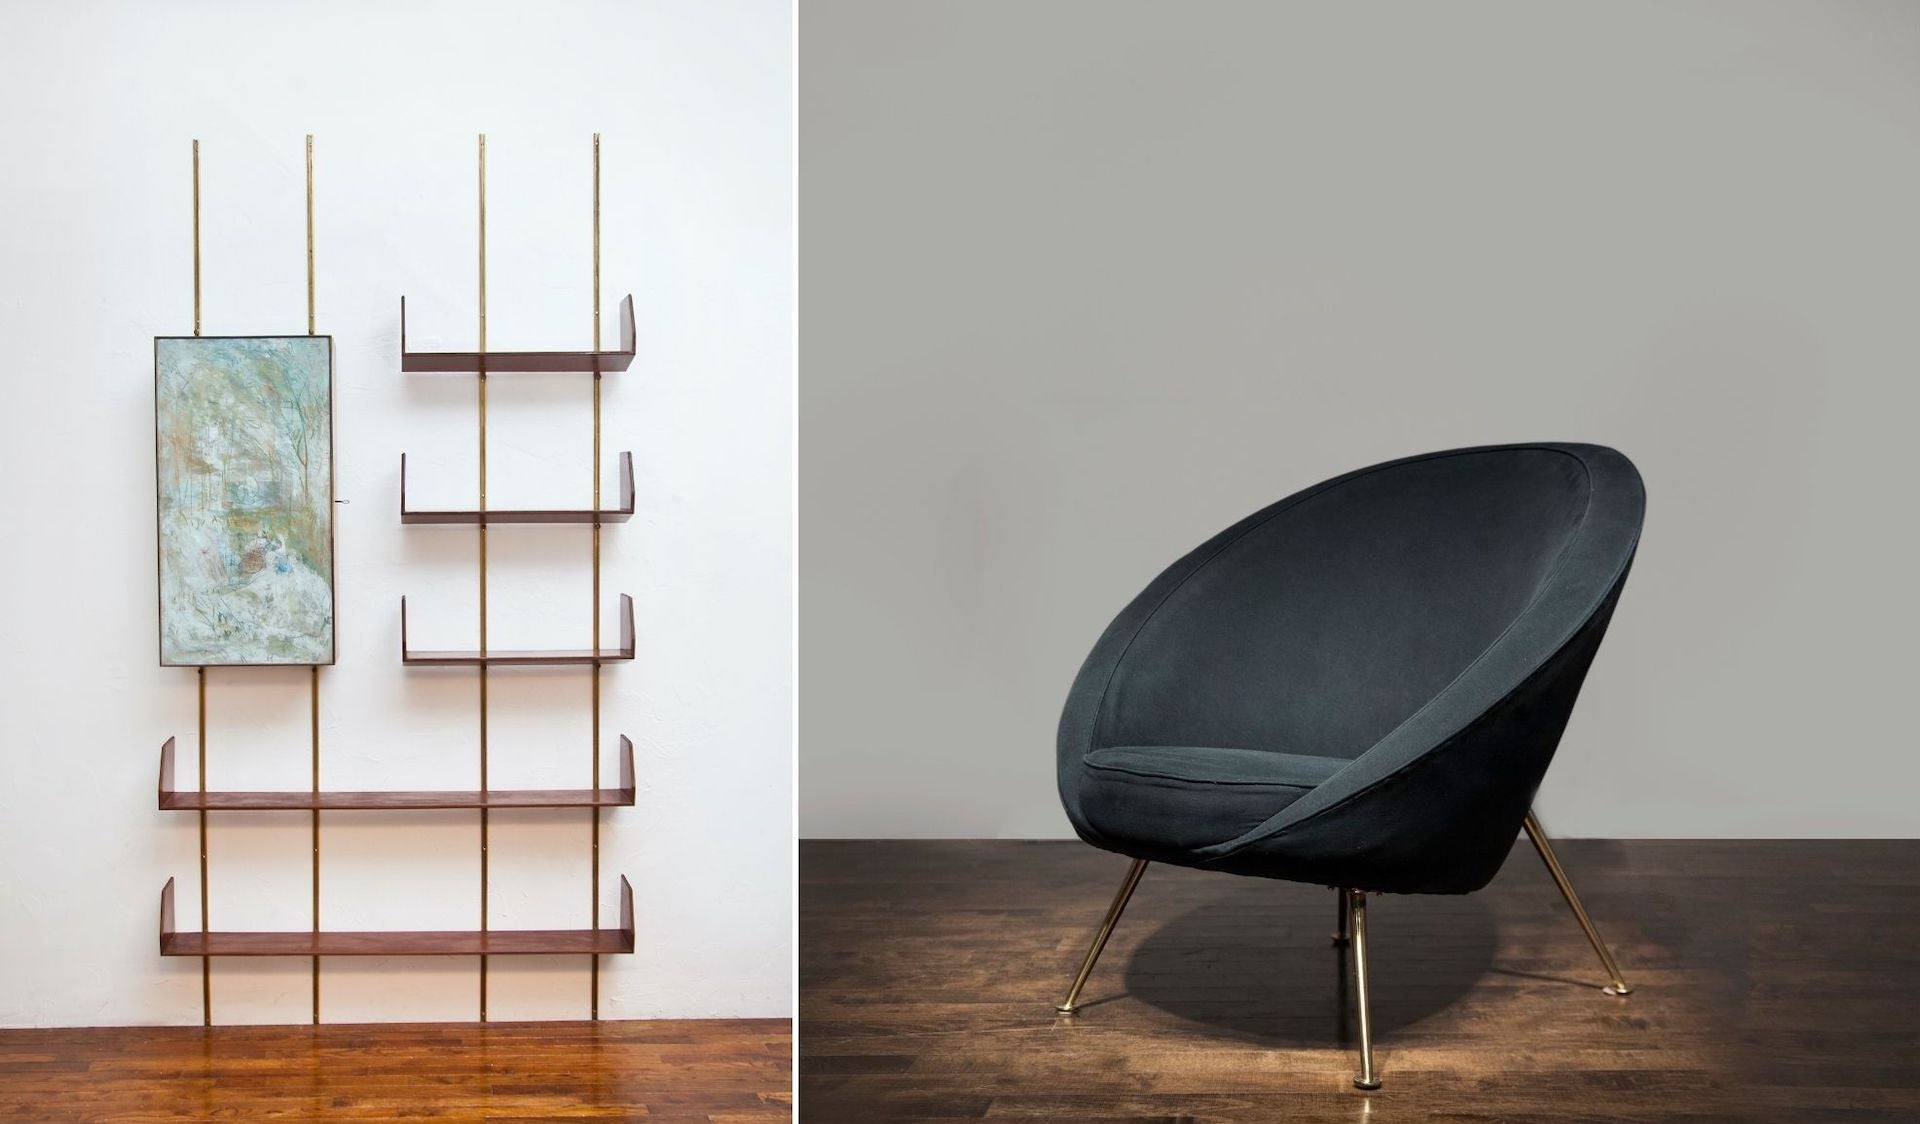 Shelving System by Osvaldo Borsani with Integrated Bar by Adriano di Spilimbergo, c. 1950; Rare Early Egg Chair by Ico Parisi, 1951. Photos © Nicholas Kilner